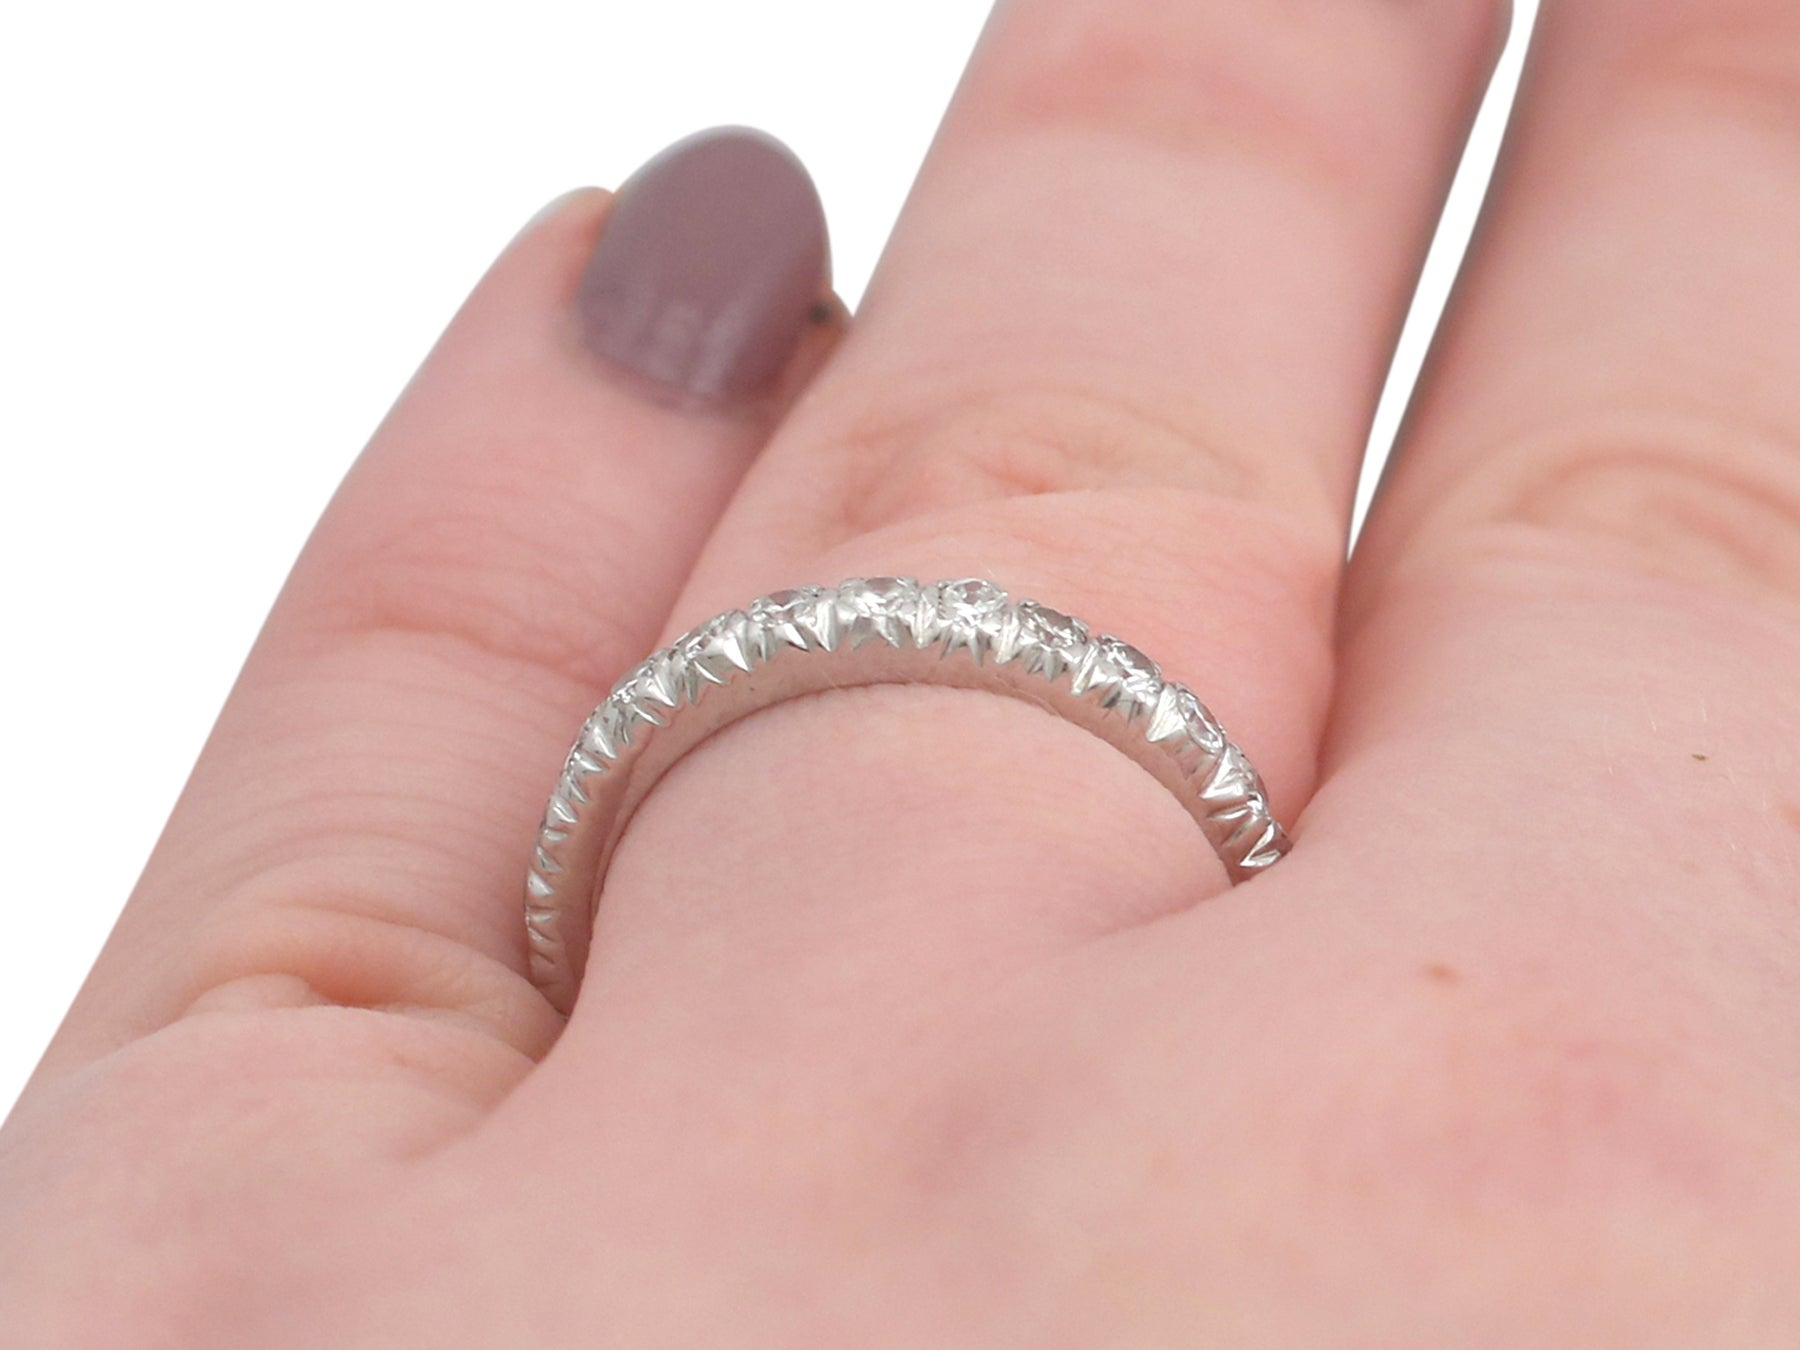 1950 Diamond and White Gold Full Eternity Ring For Sale at 1stdibs